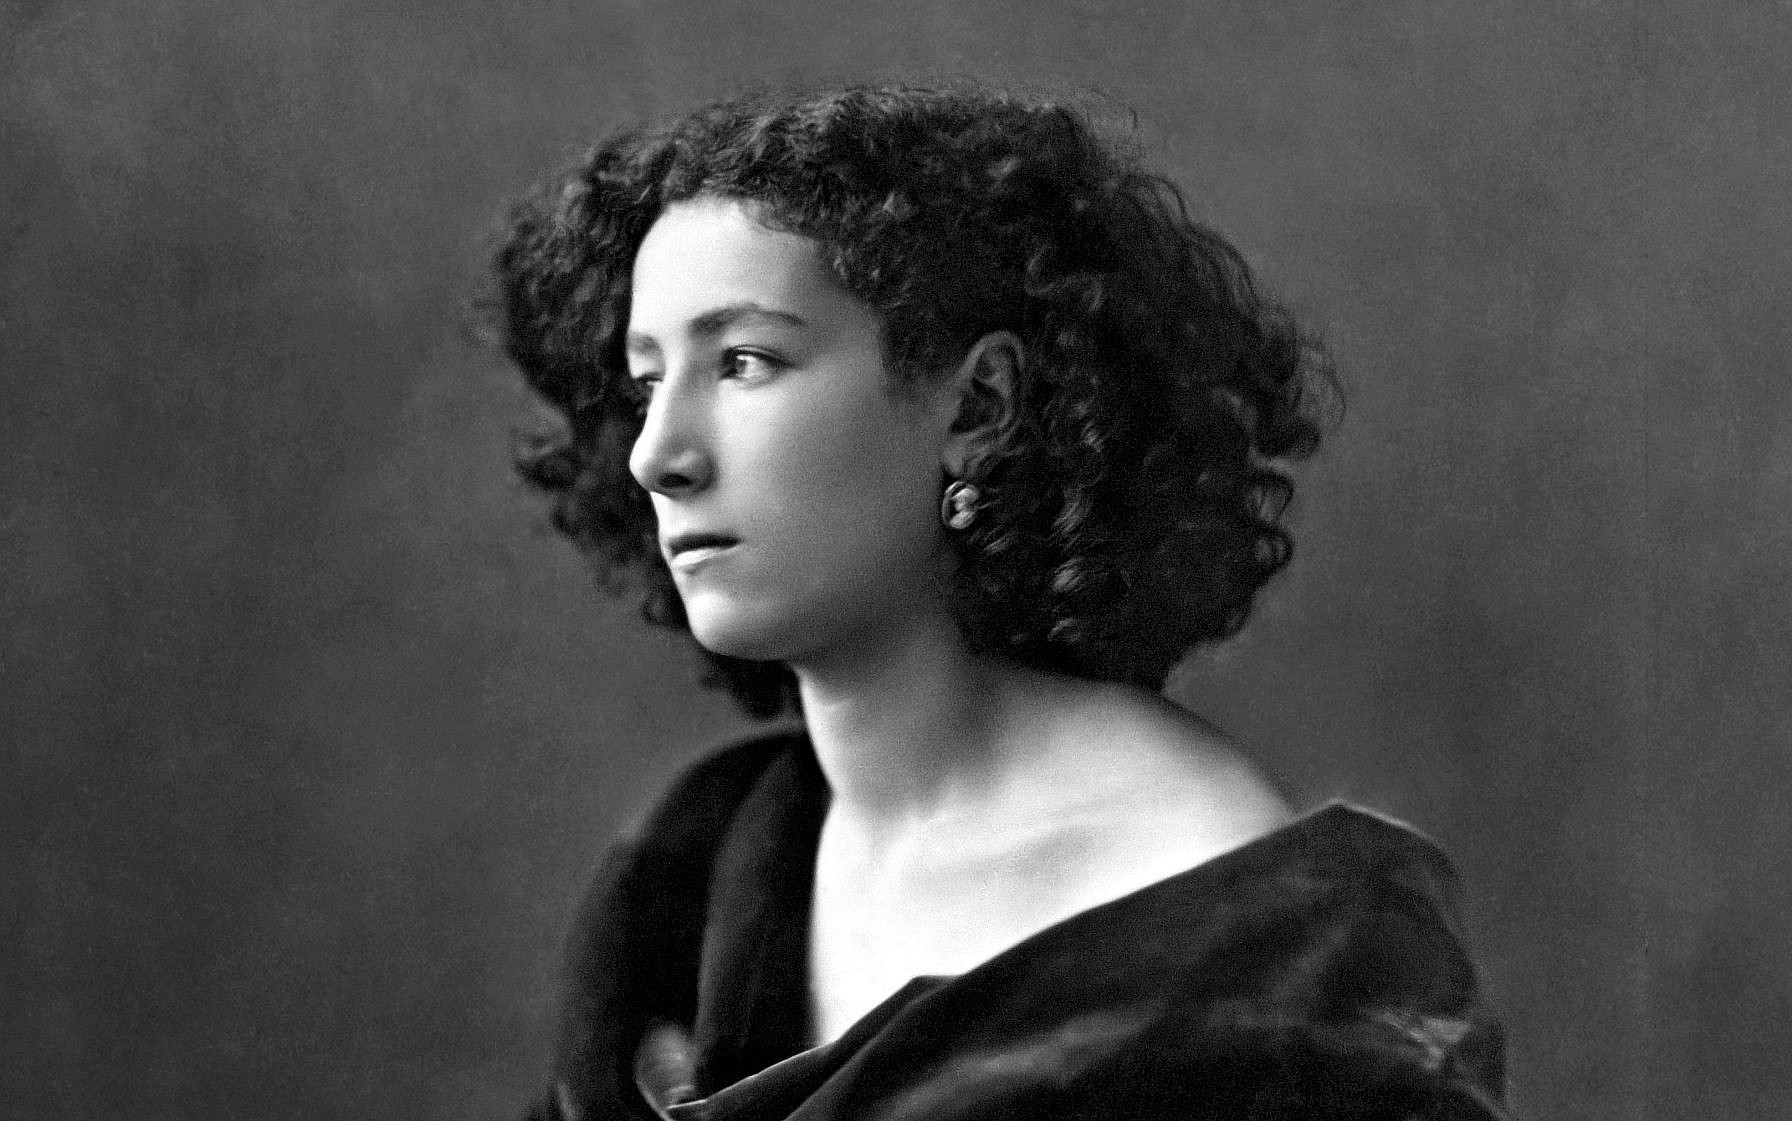 Sarah Bernhardt captured by Felix Nadar, 1864 (Public domain)